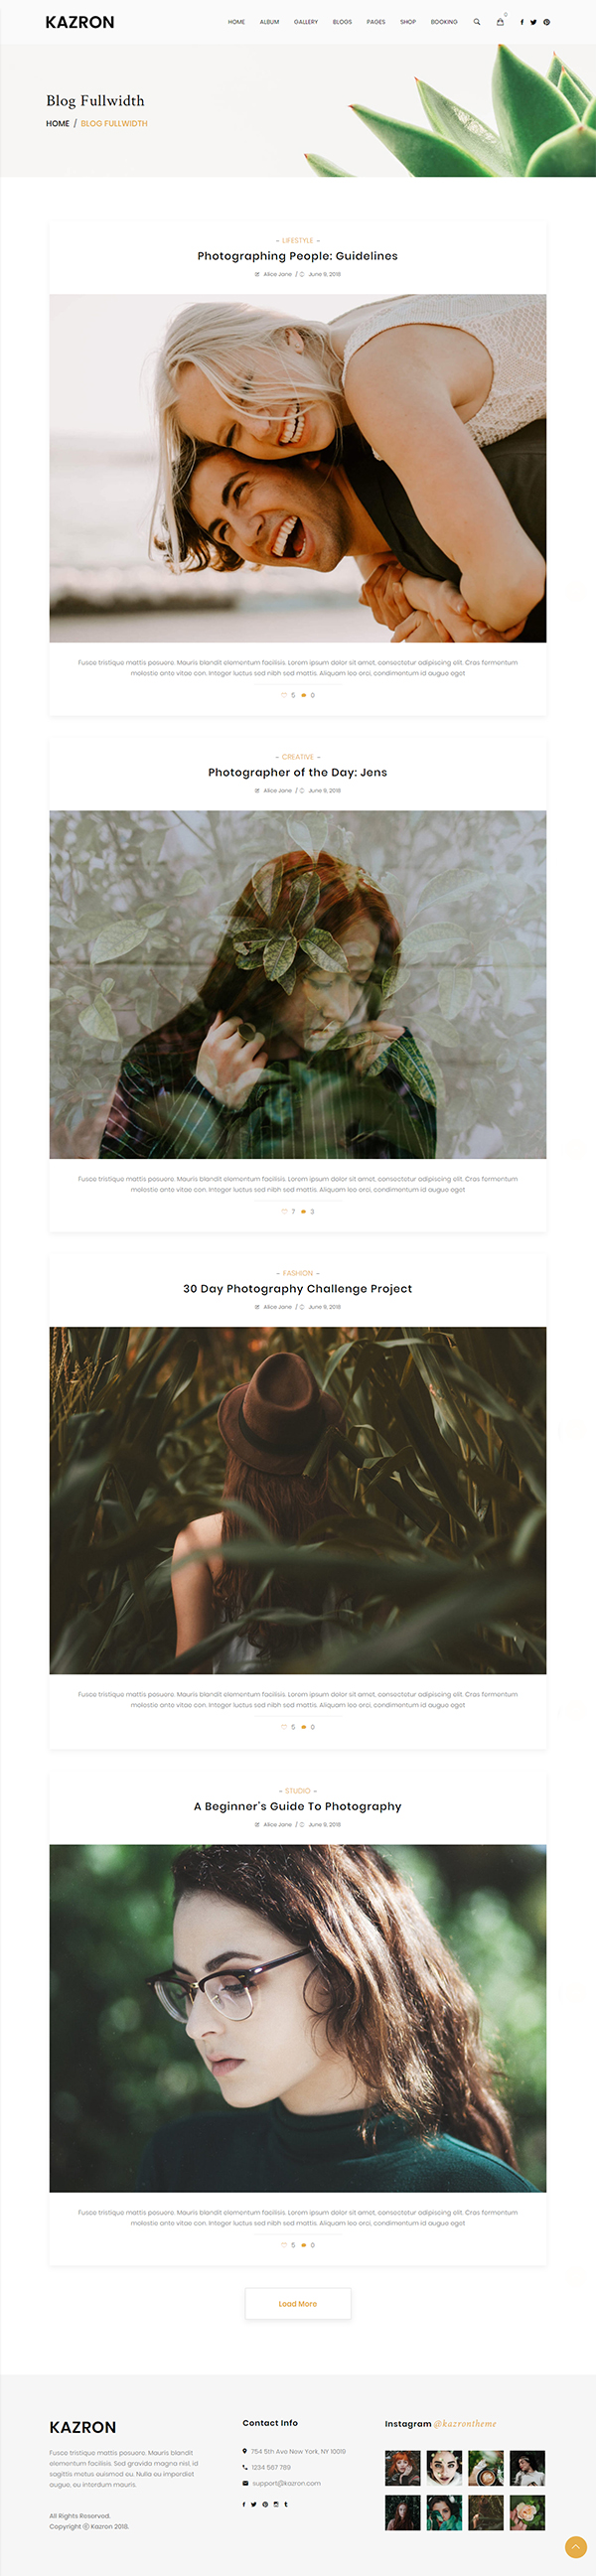 Kazron - Photography WordPress Theme